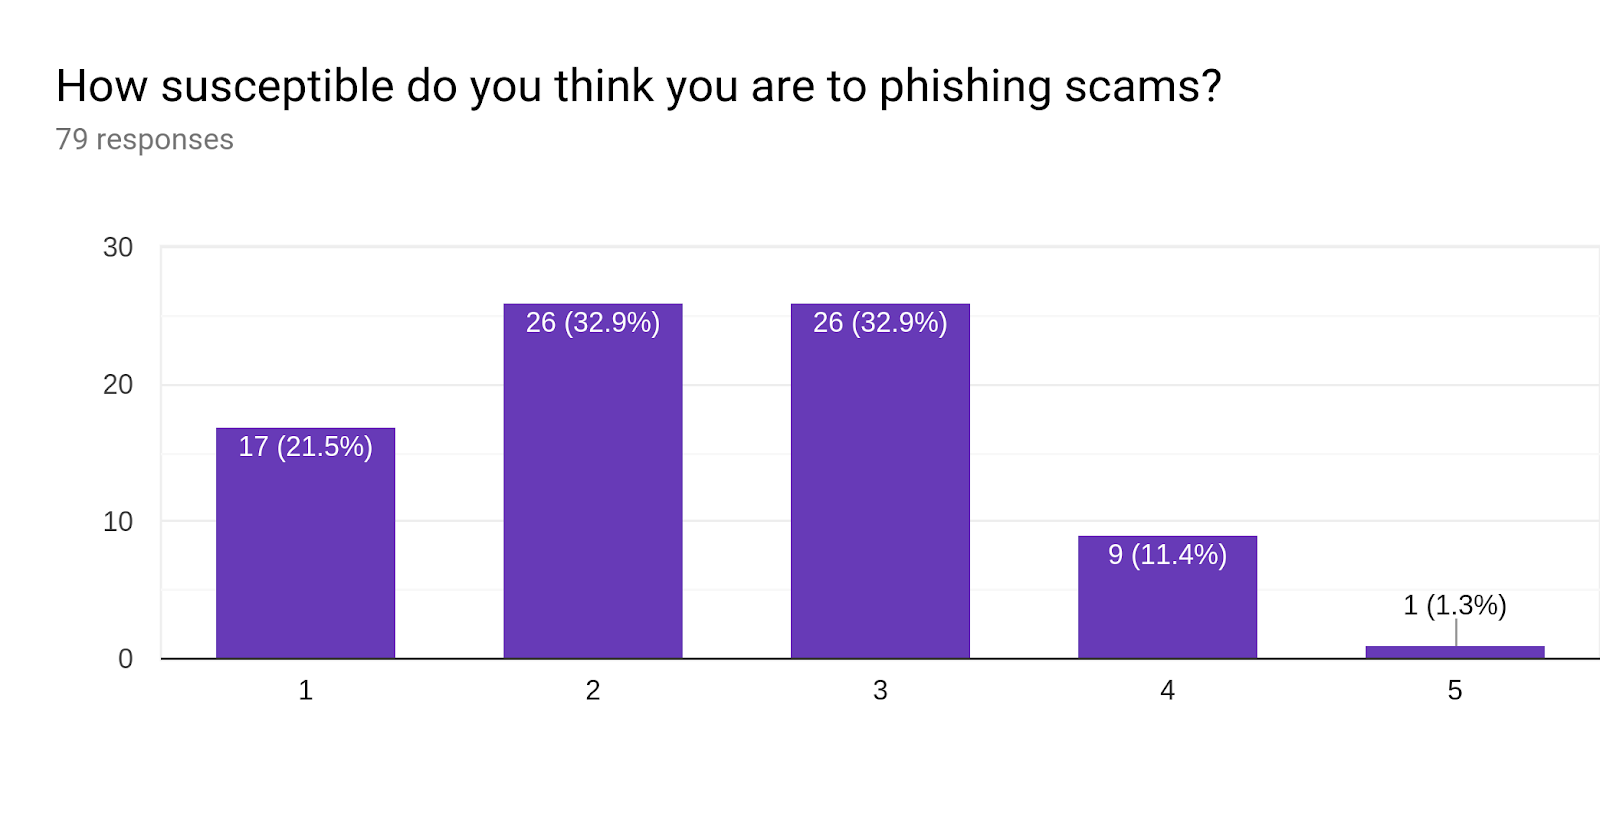 Forms response chart. Question title: How susceptible do you think you are to phishing scams? . Number of responses: 79 responses.